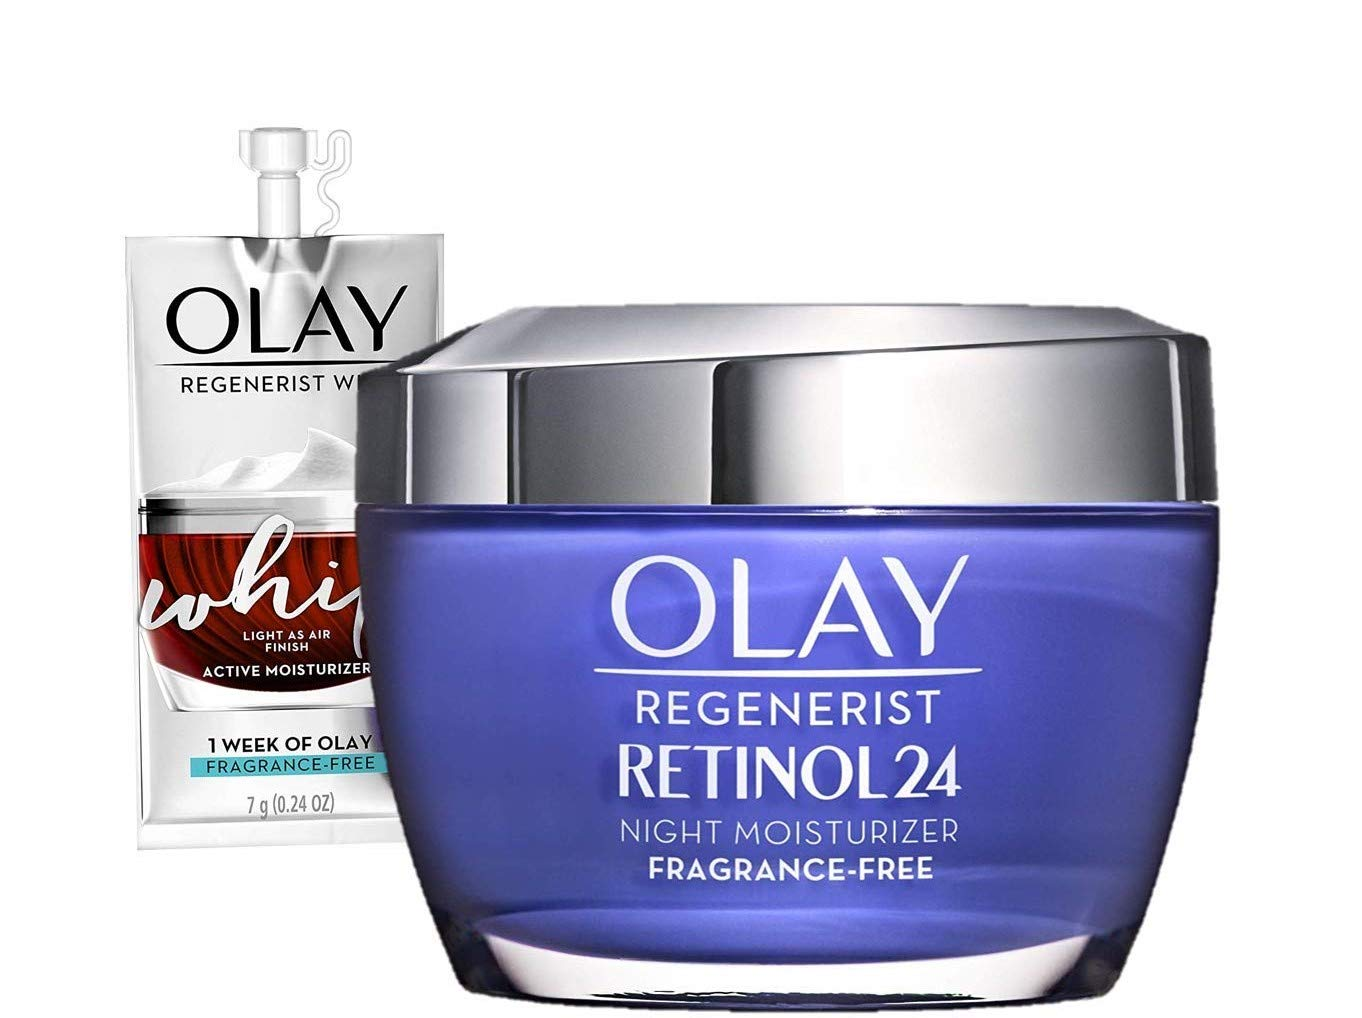 Olay Regenerist Retinol 24 Night Moisturizer Fragrance-Free + Whip Face Moisturizer Travel/Trial Size Gift Set- Buy Online in Pakistan at desertcart.pk. ProductId : 159359017.